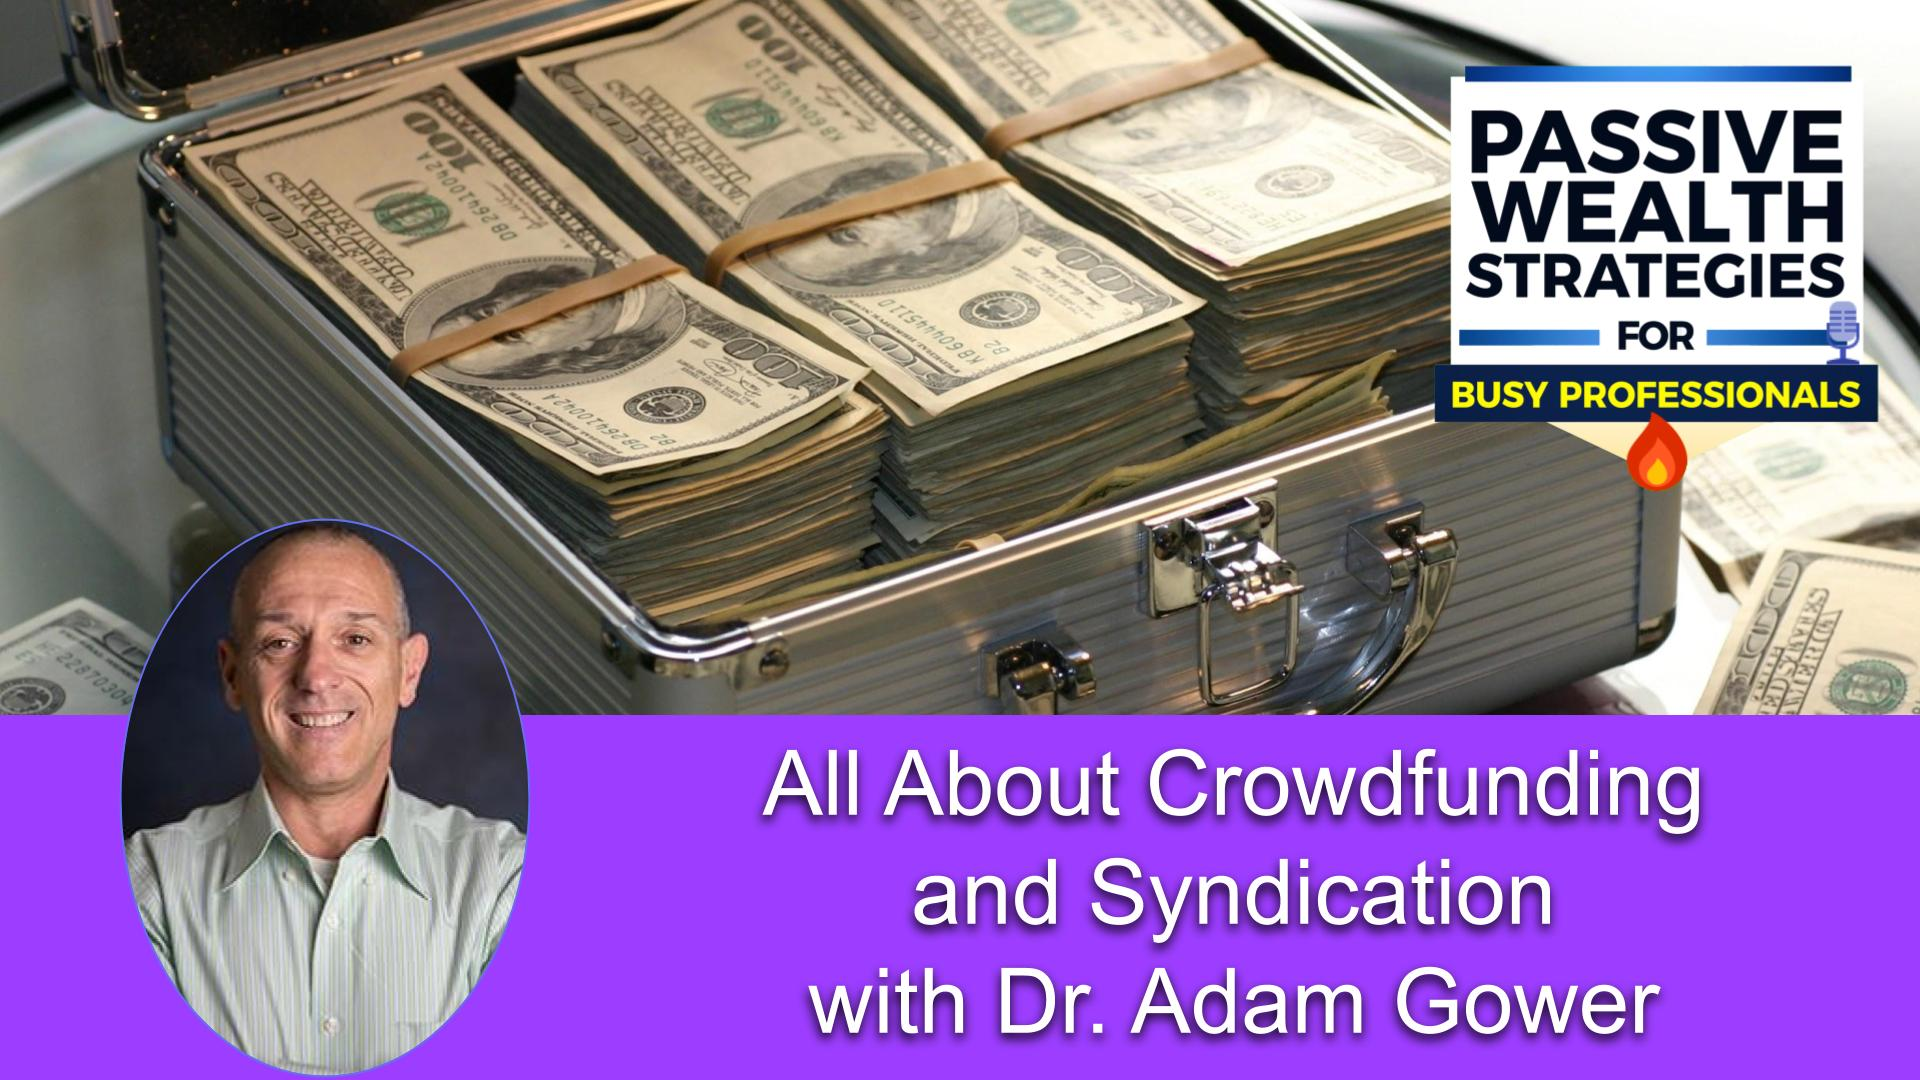 180 All About Crowdfunding and Syndication with Dr. Adam Gower